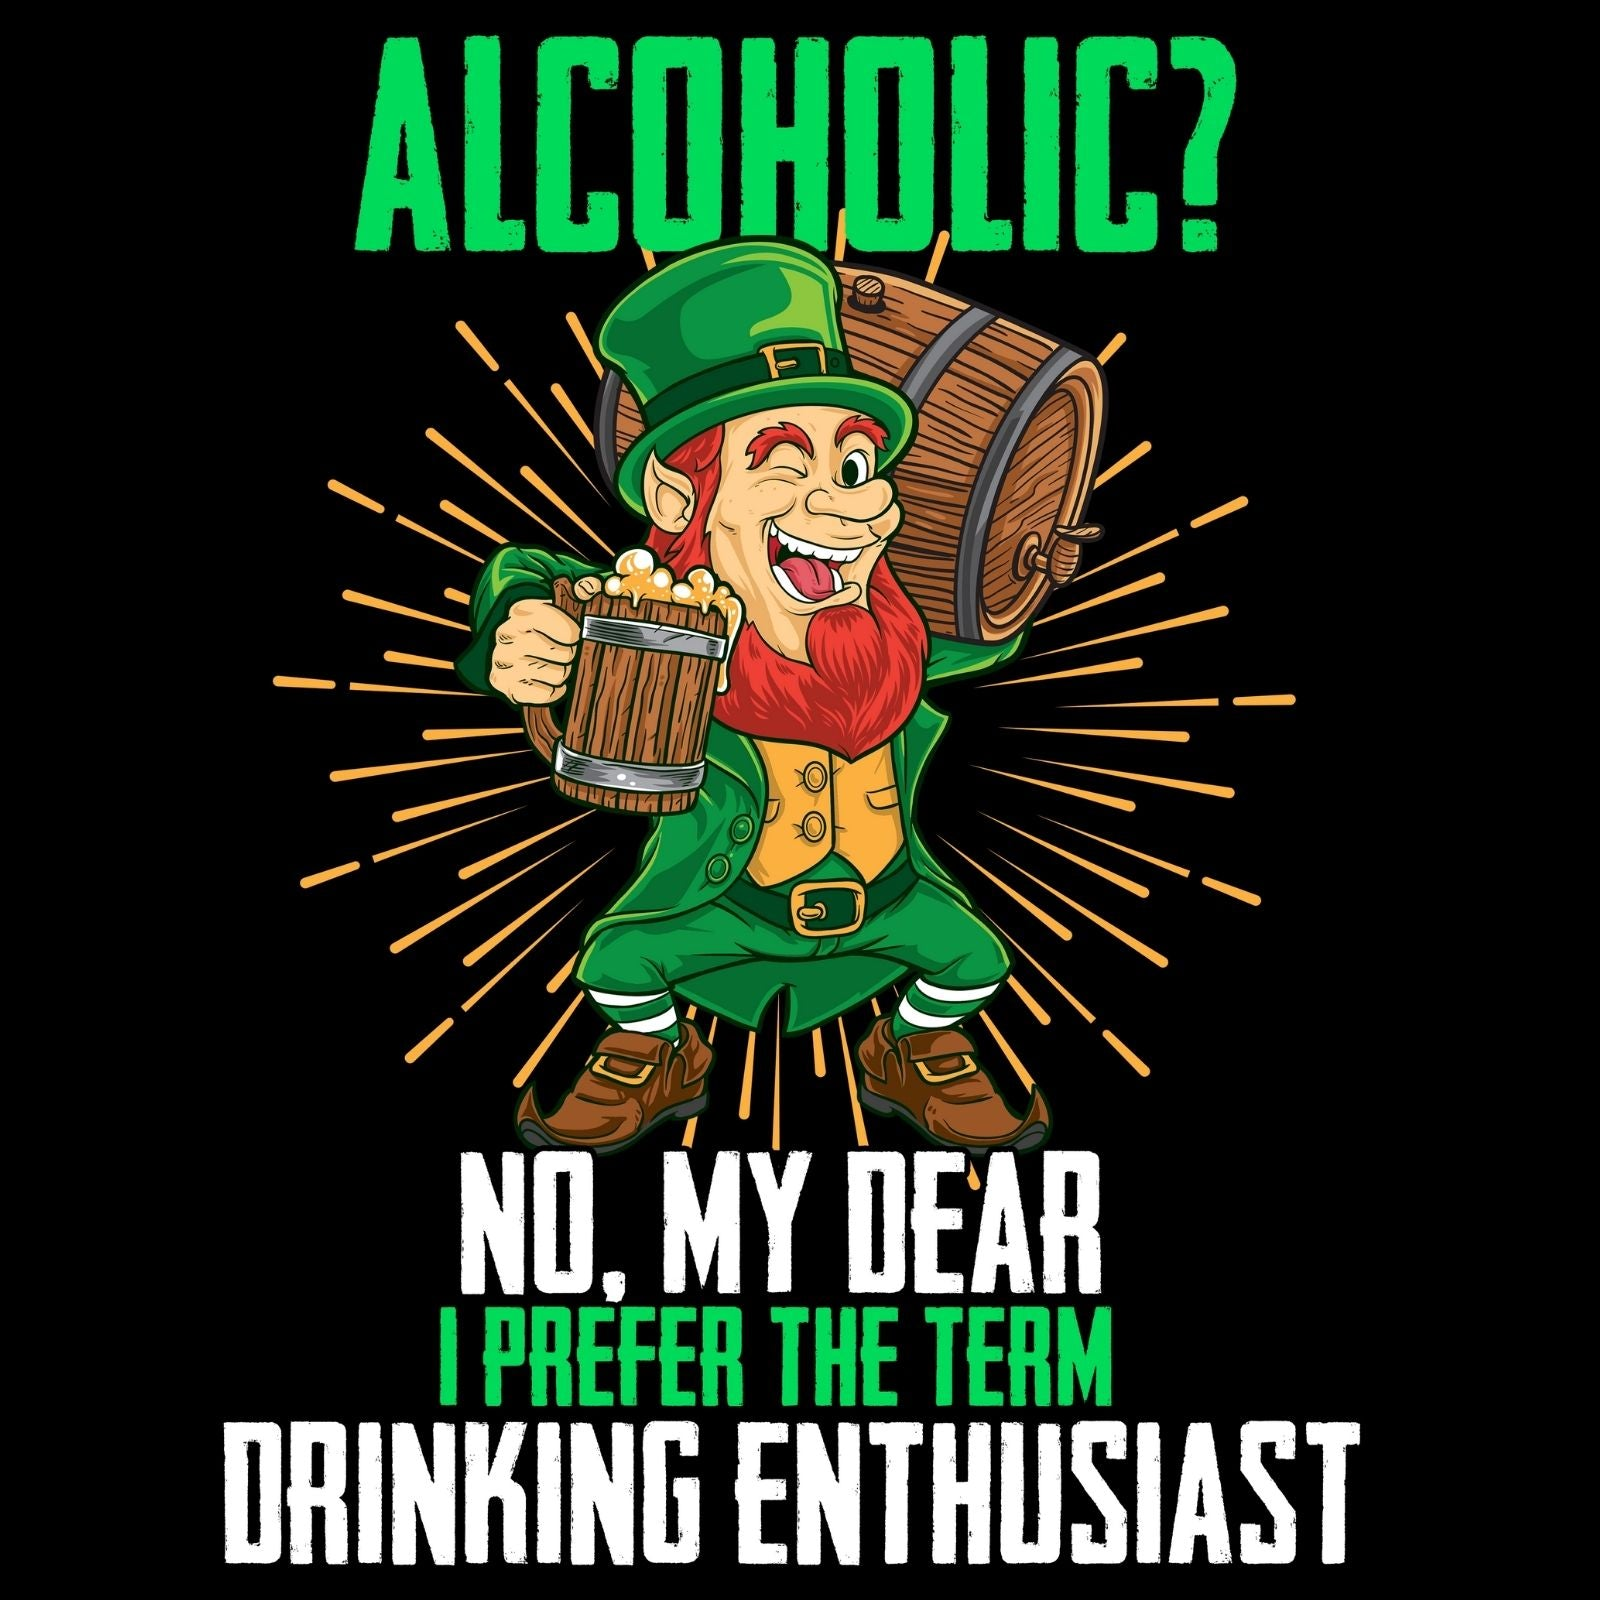 Alcoholic? No, My Dear I Prefer Drinking Enthusiast - Bastard Graphics